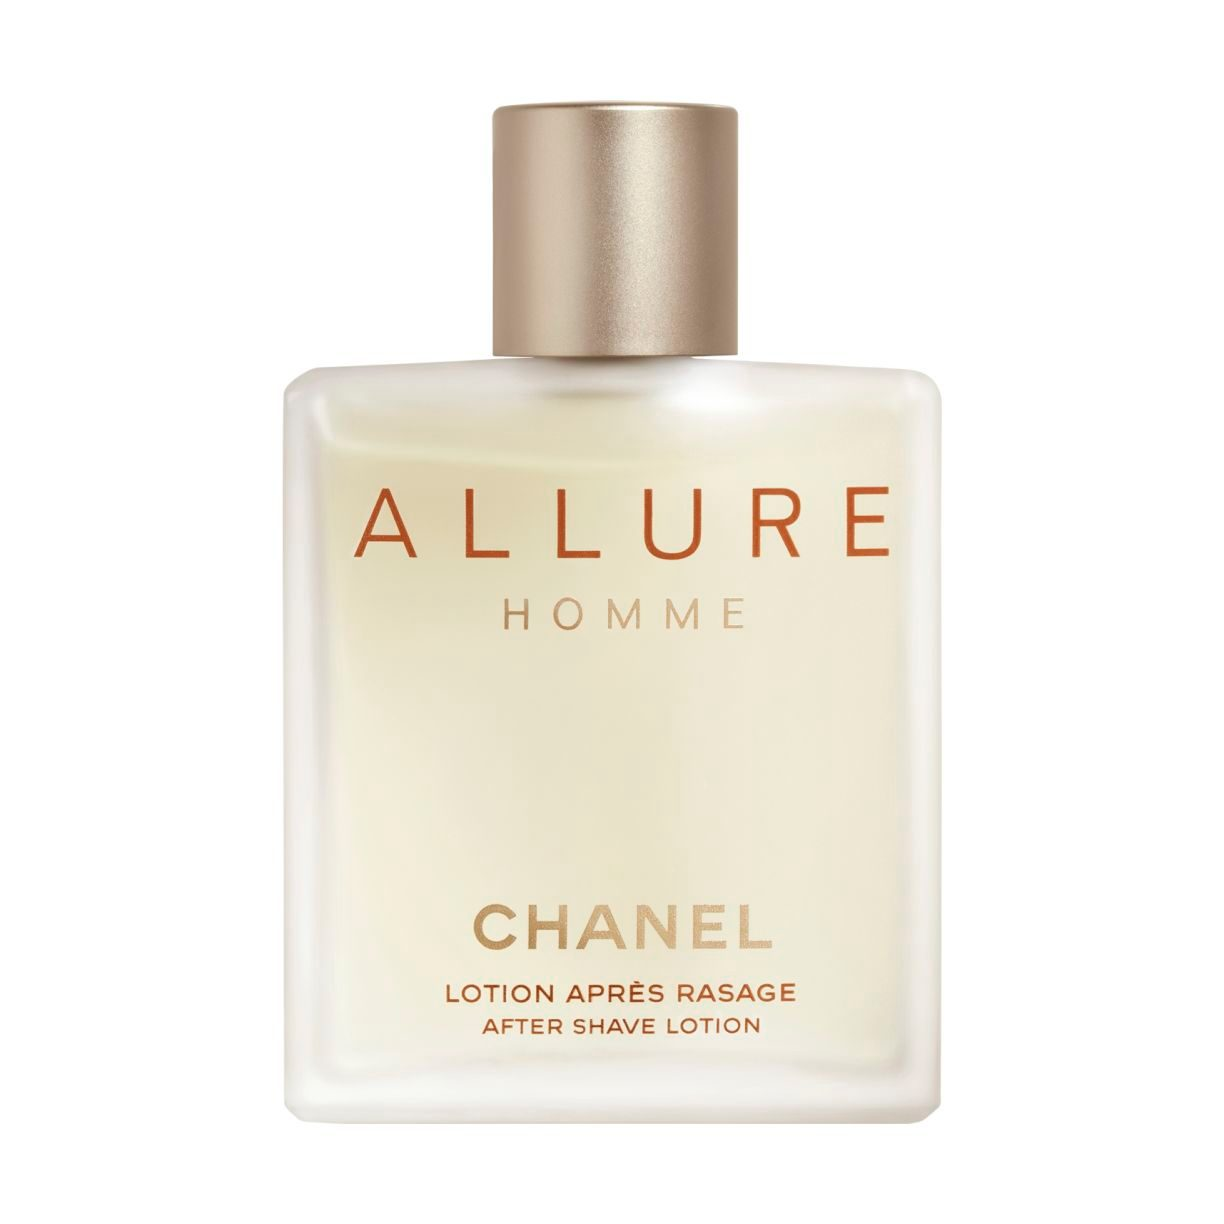 ALLURE HOMME AFTER SHAVE LOTION